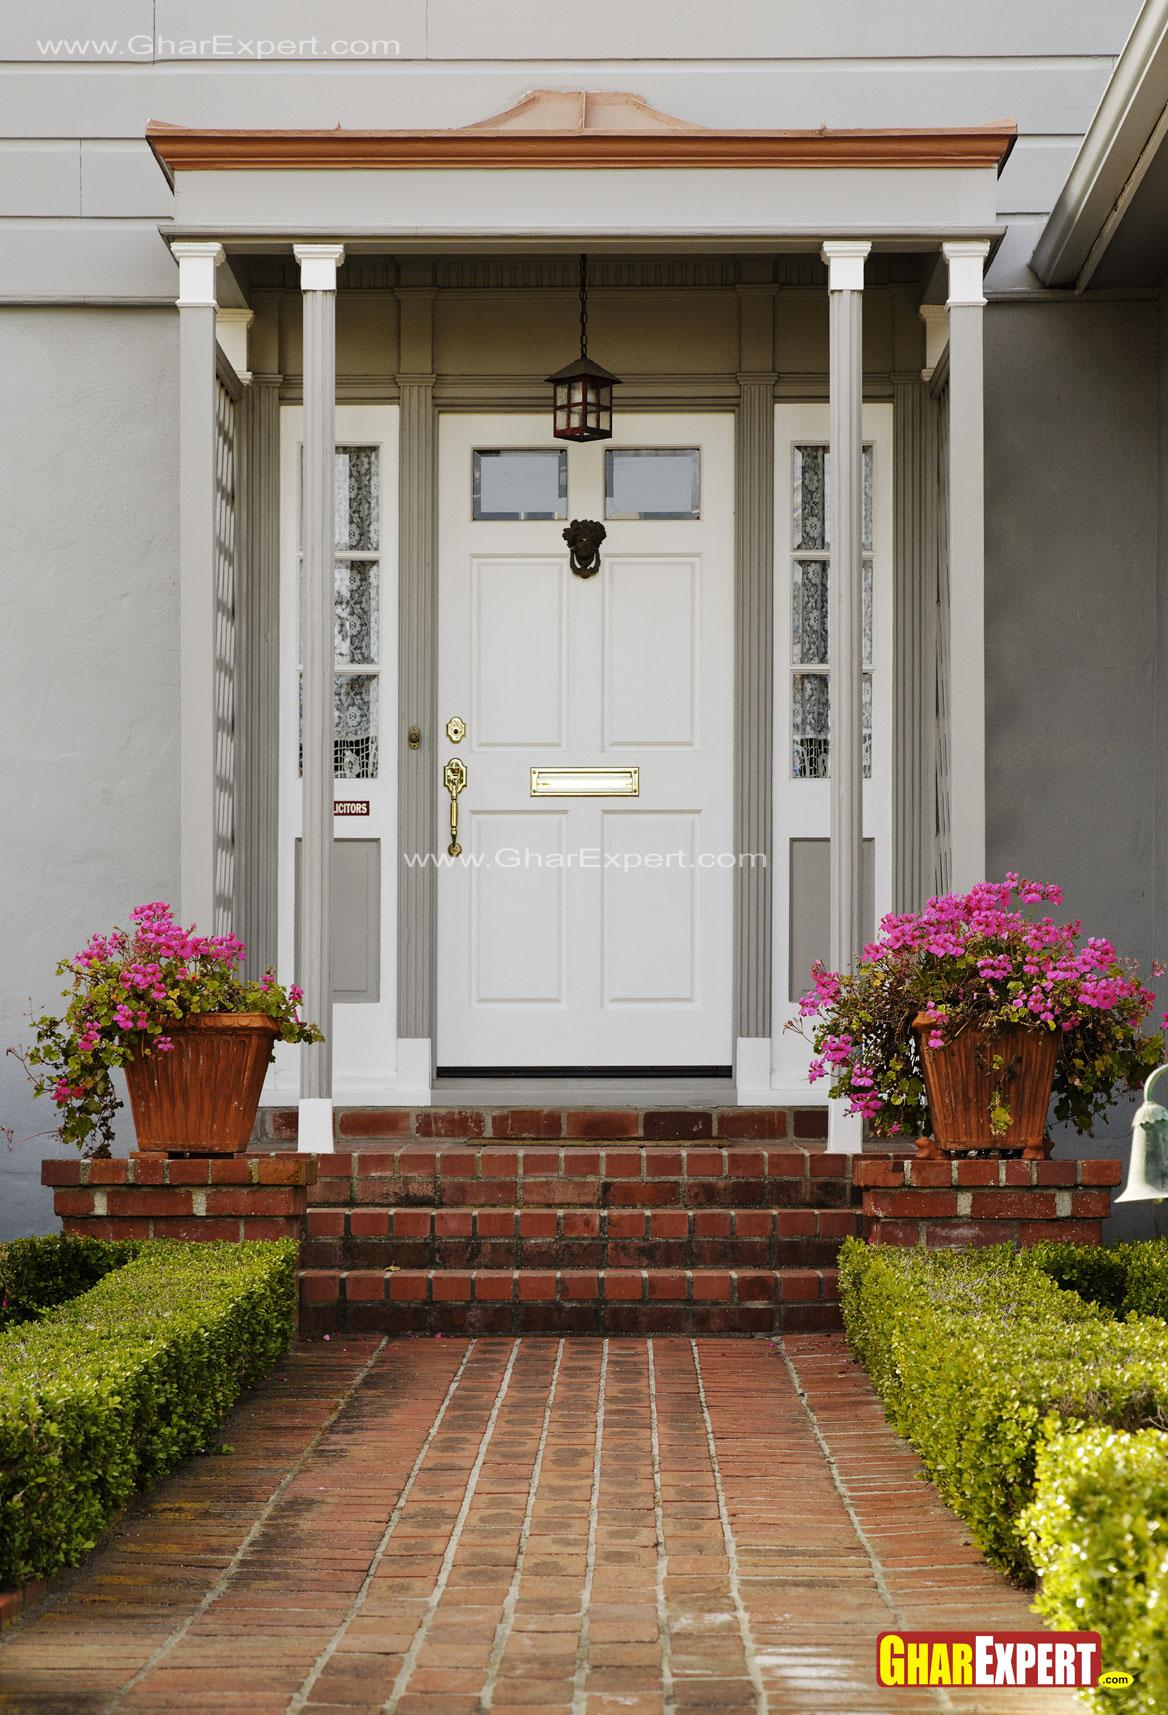 Victorian style main entrance ....